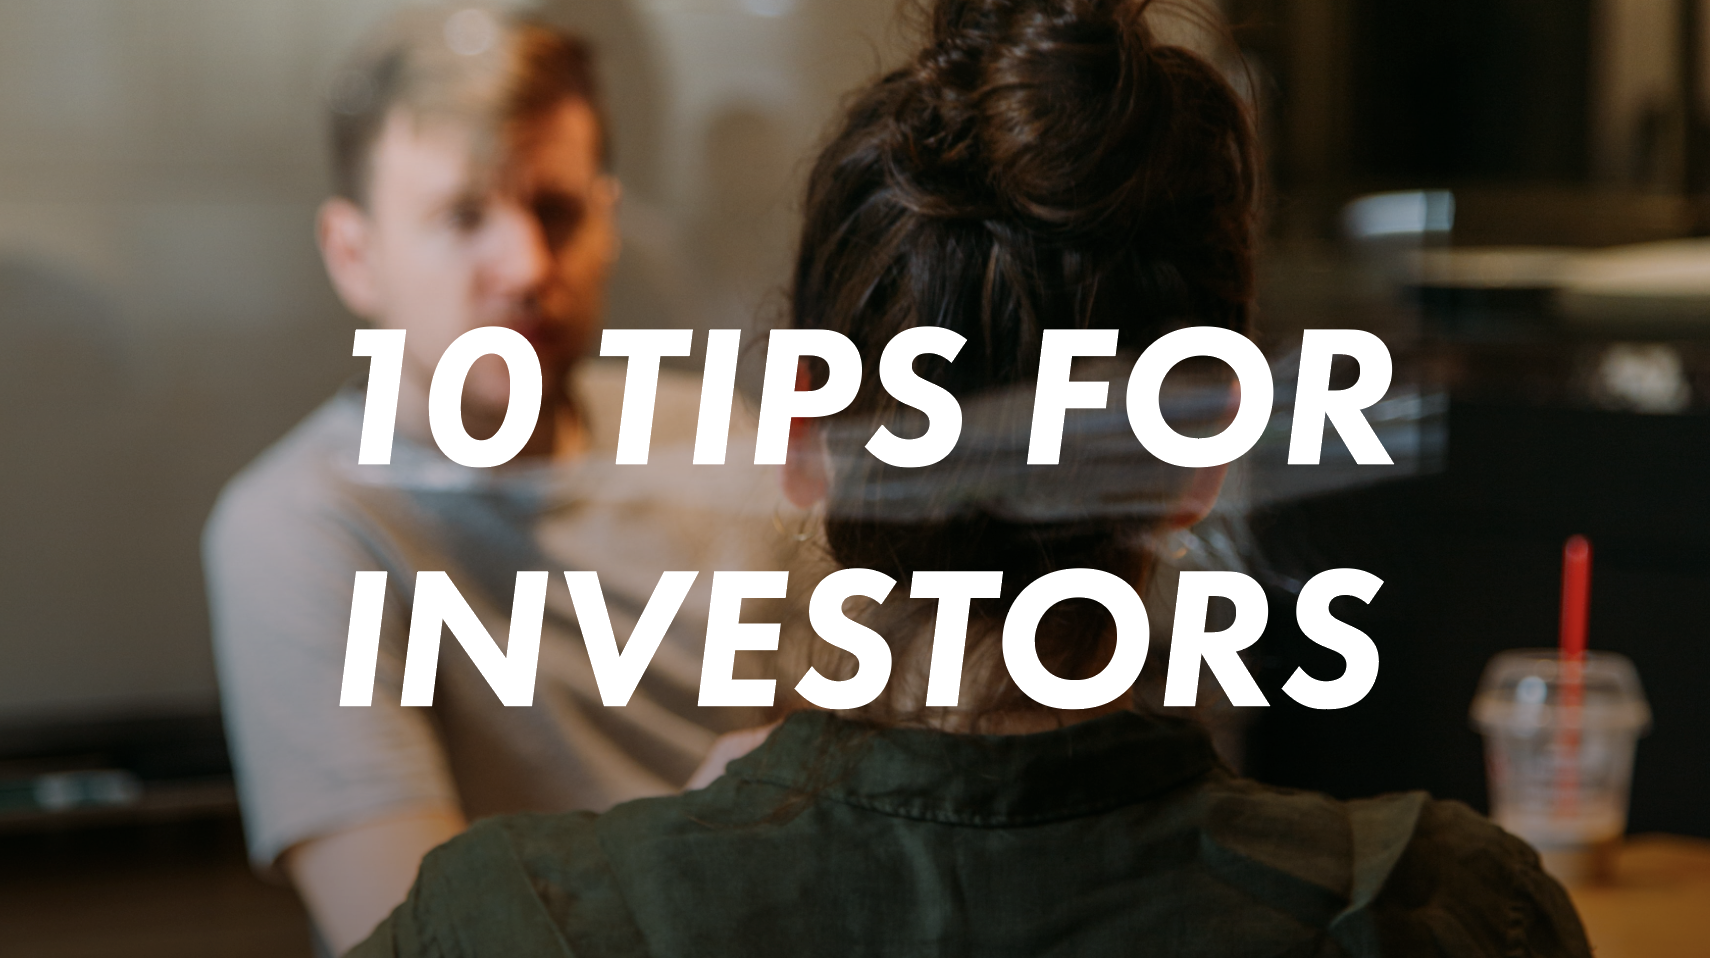 Top tips for staying calm in an uncertain market